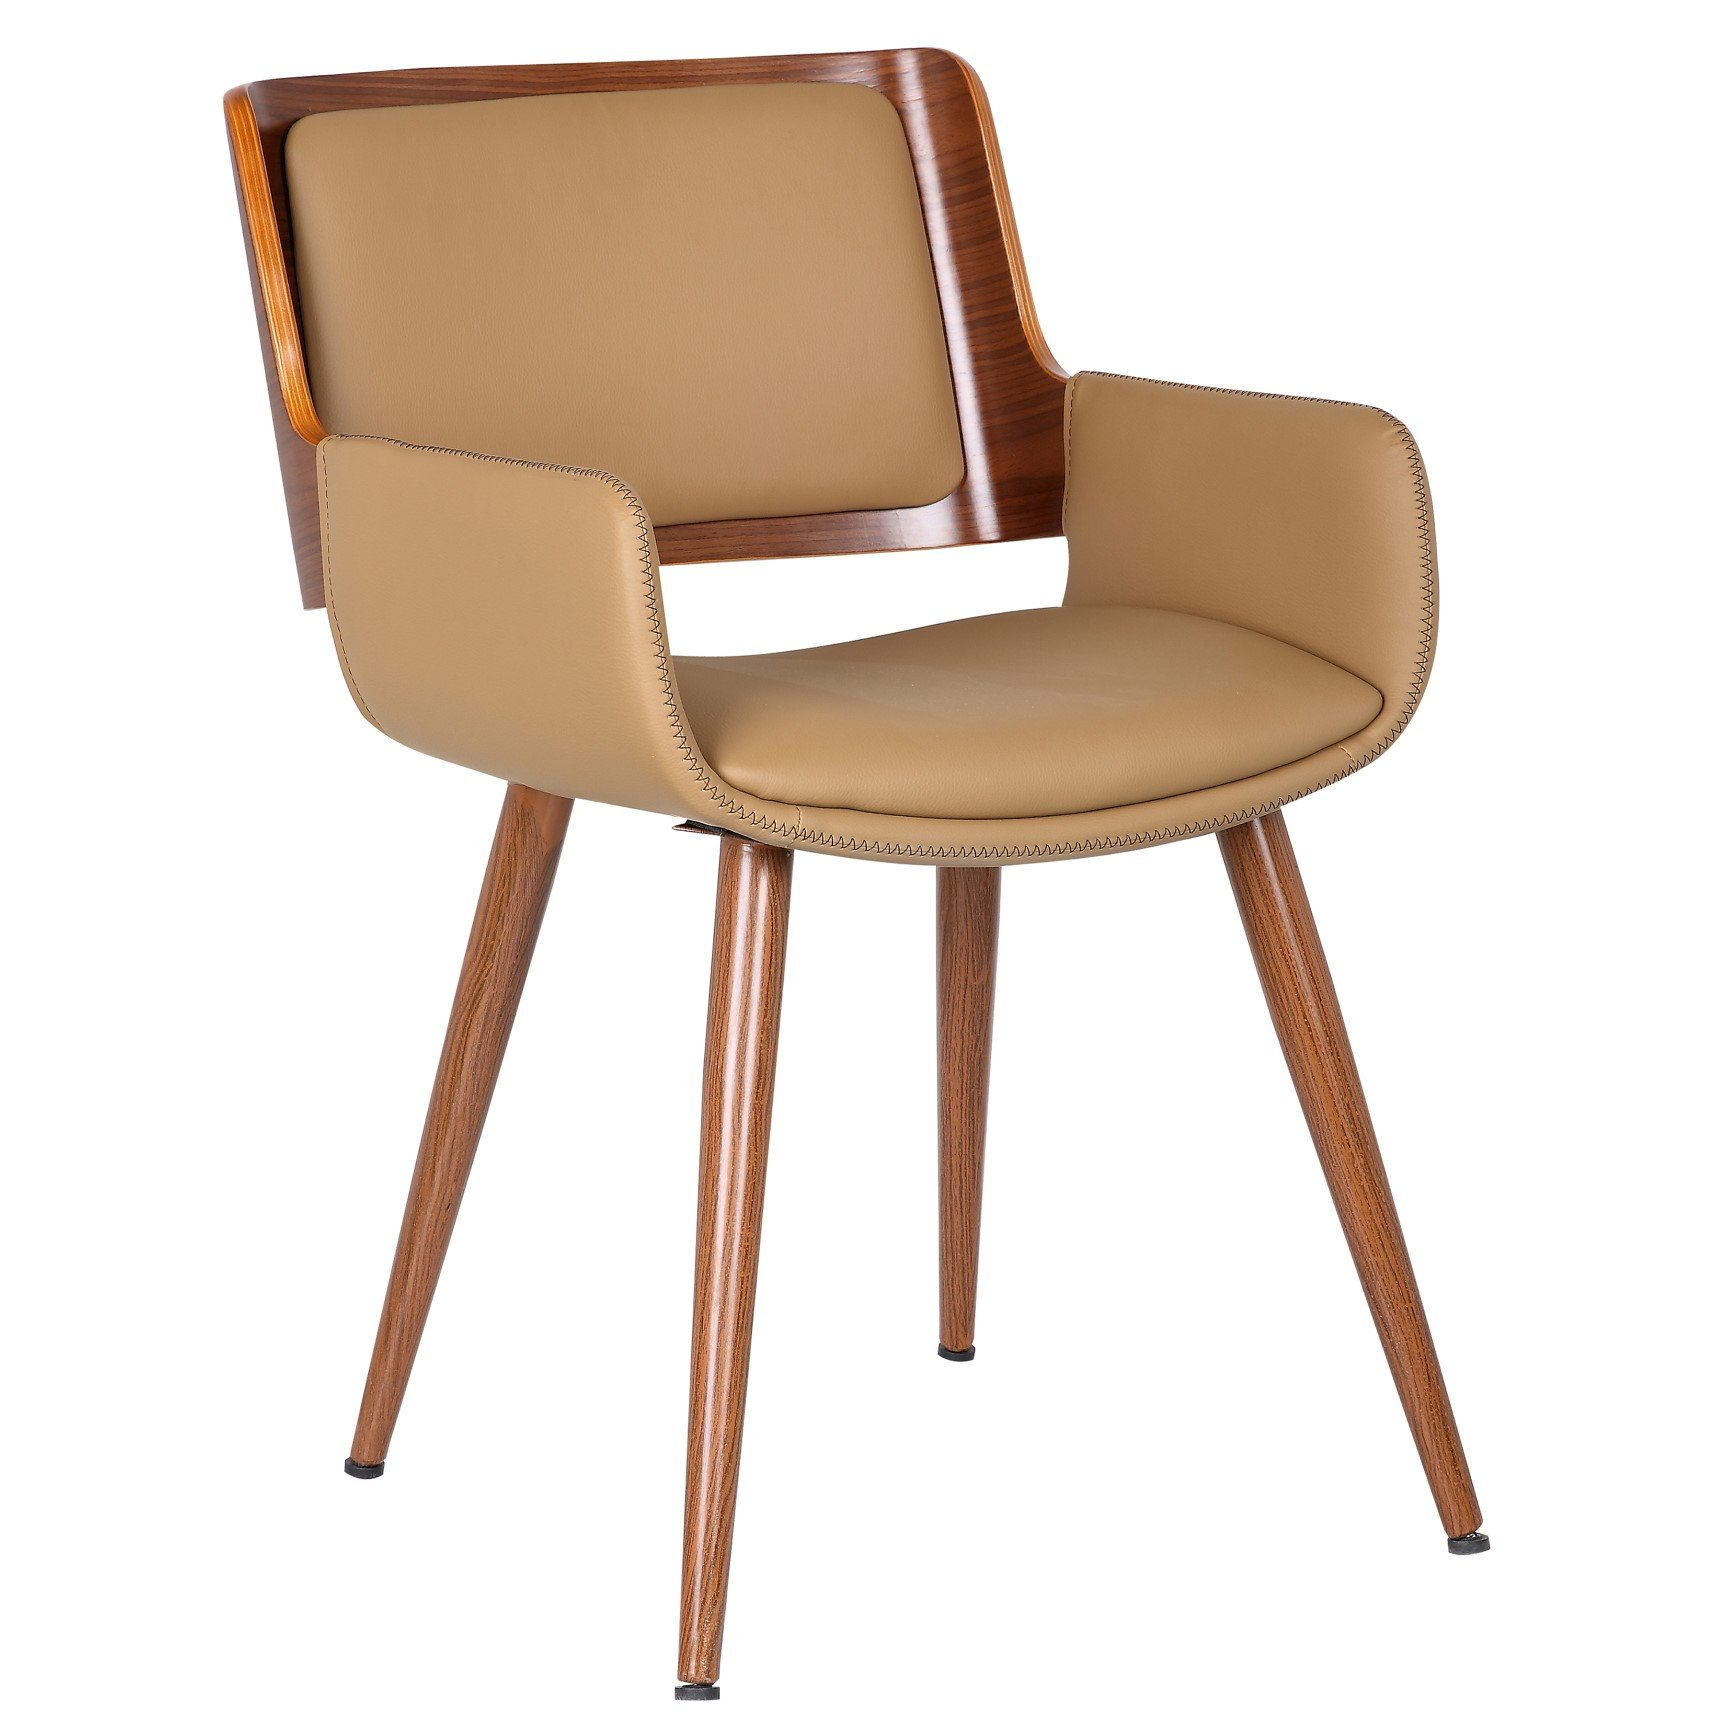 Porthos Home Finnick Leisure Chair, Natural